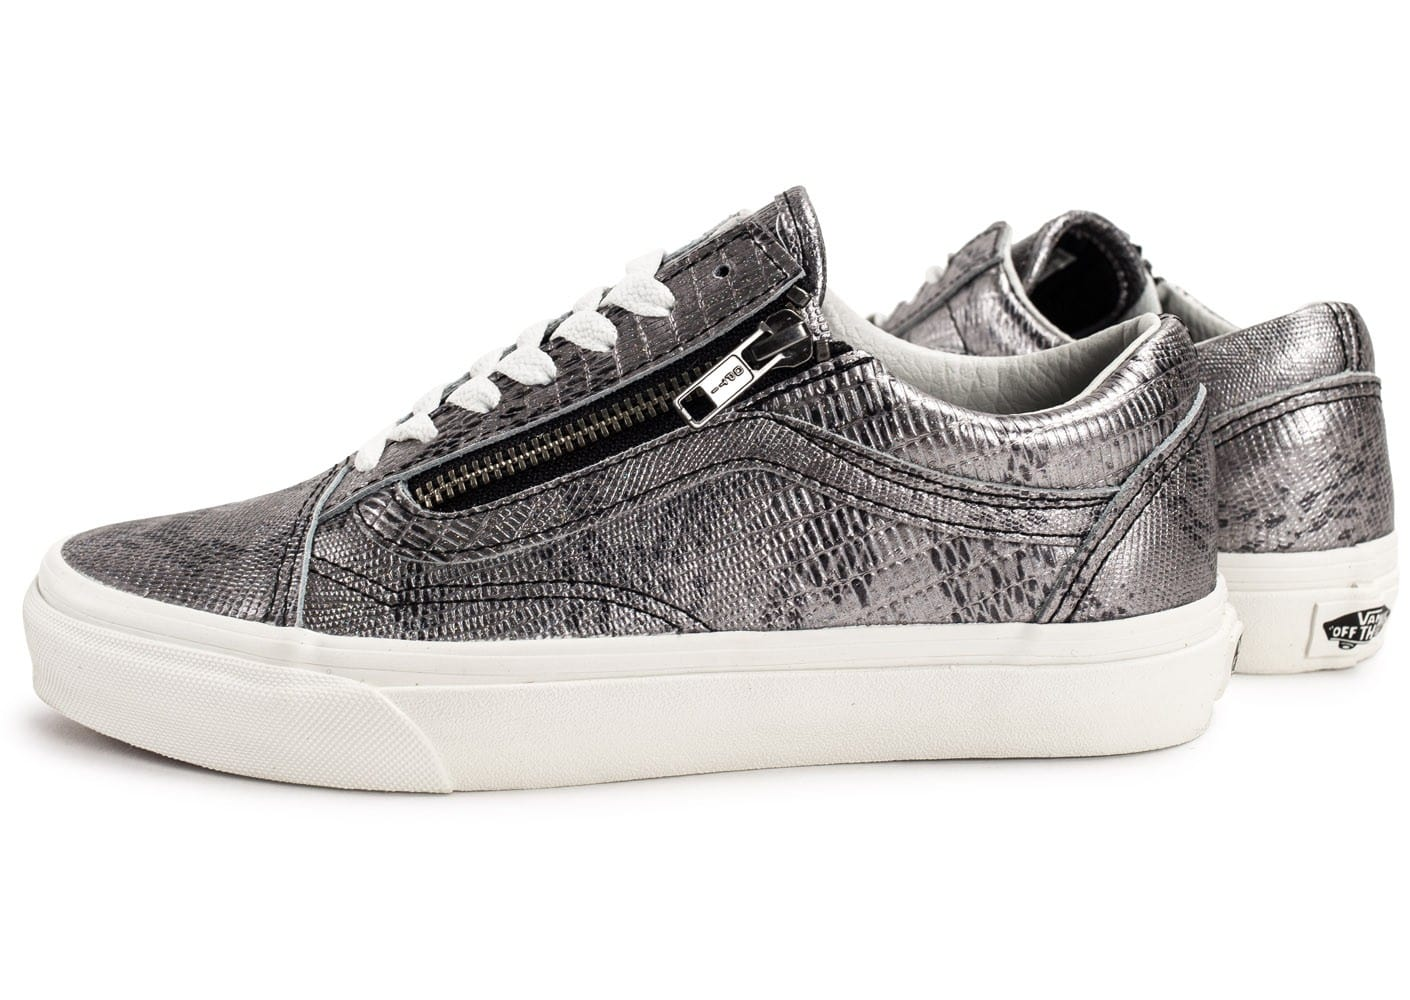 Vans Old Skool Zip Disco Python Chaussures Baskets femme